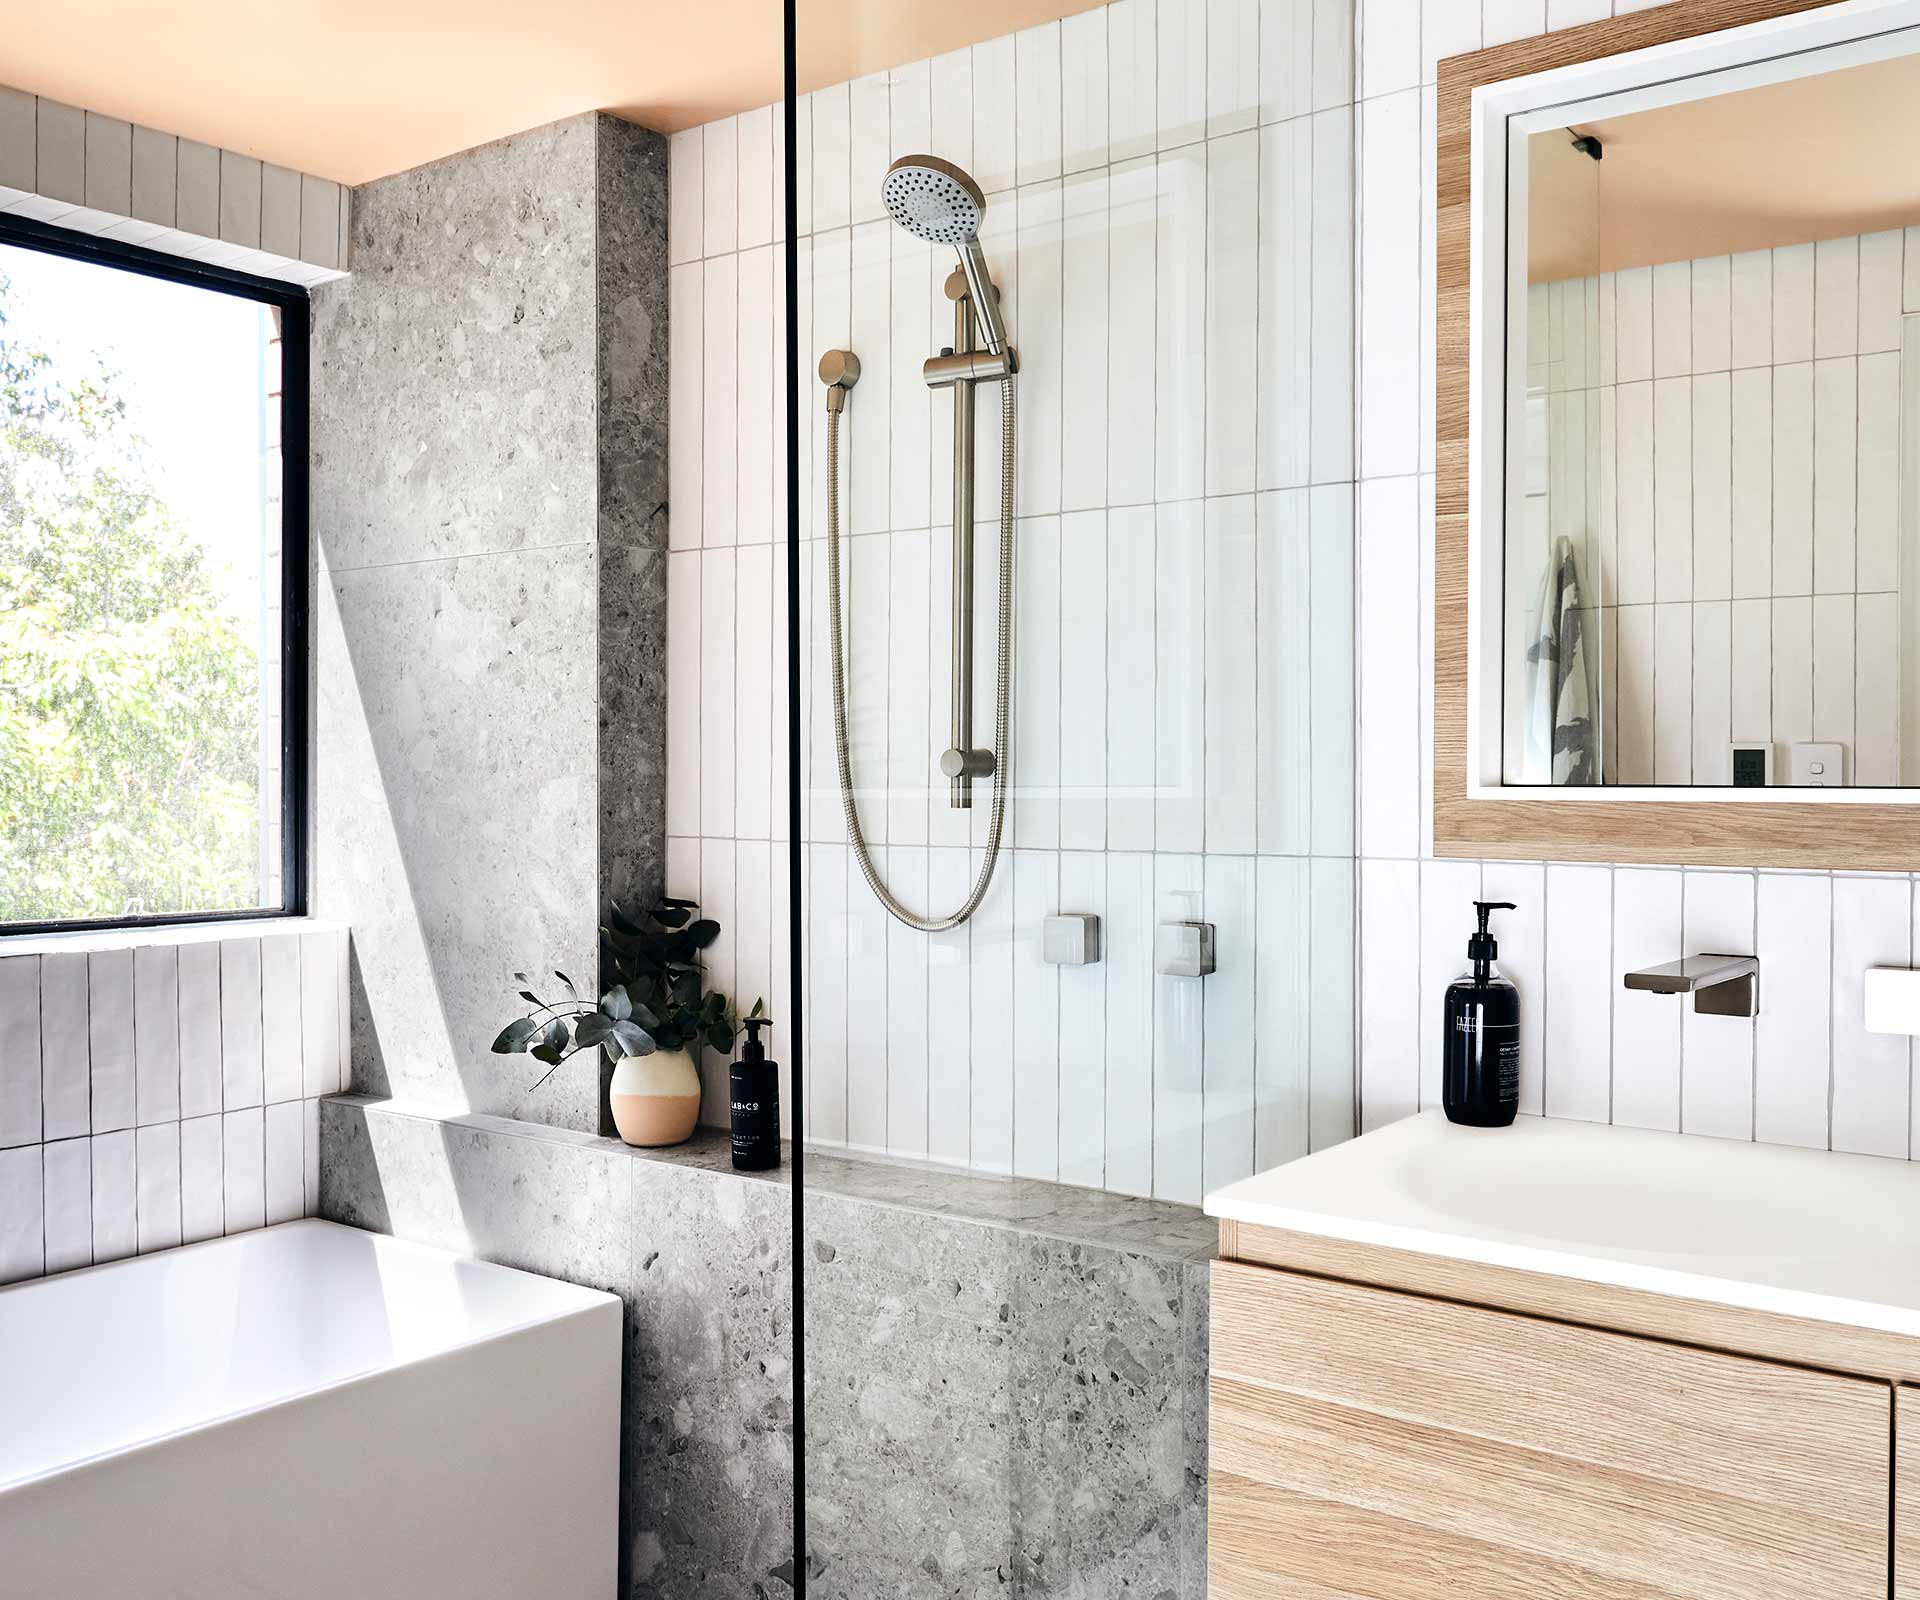 Apartment bathroom renovation: 5 tips to know